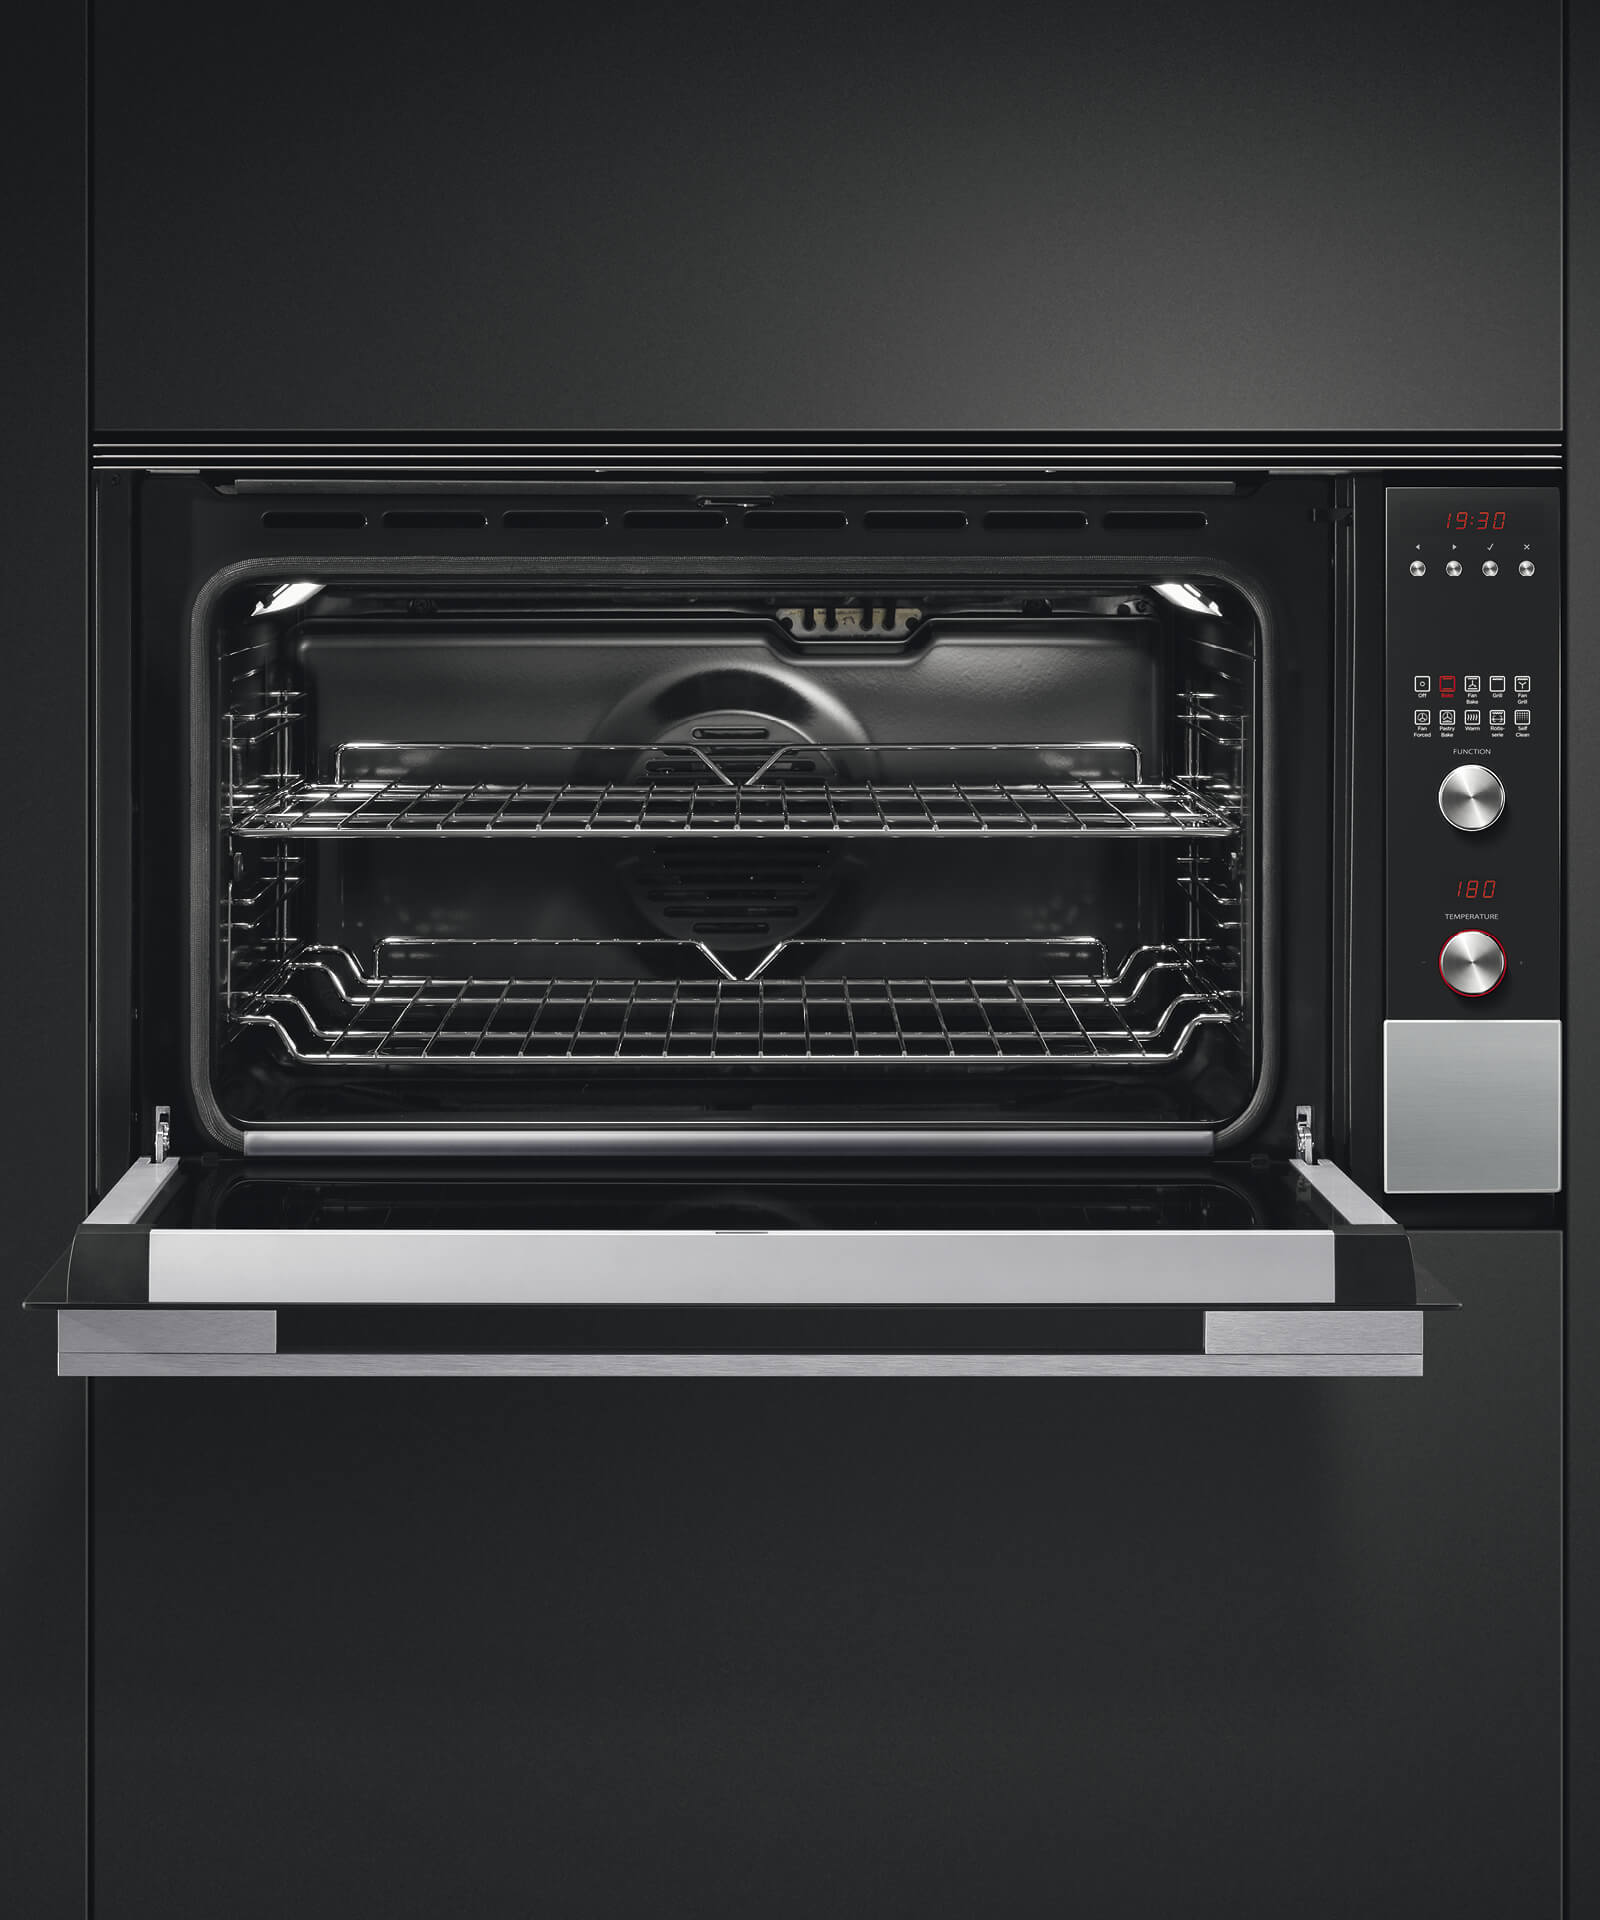 Ob90s9mepx3 90cm 9 Function Pyrolytic Built In Oven Wiring Instructions 478